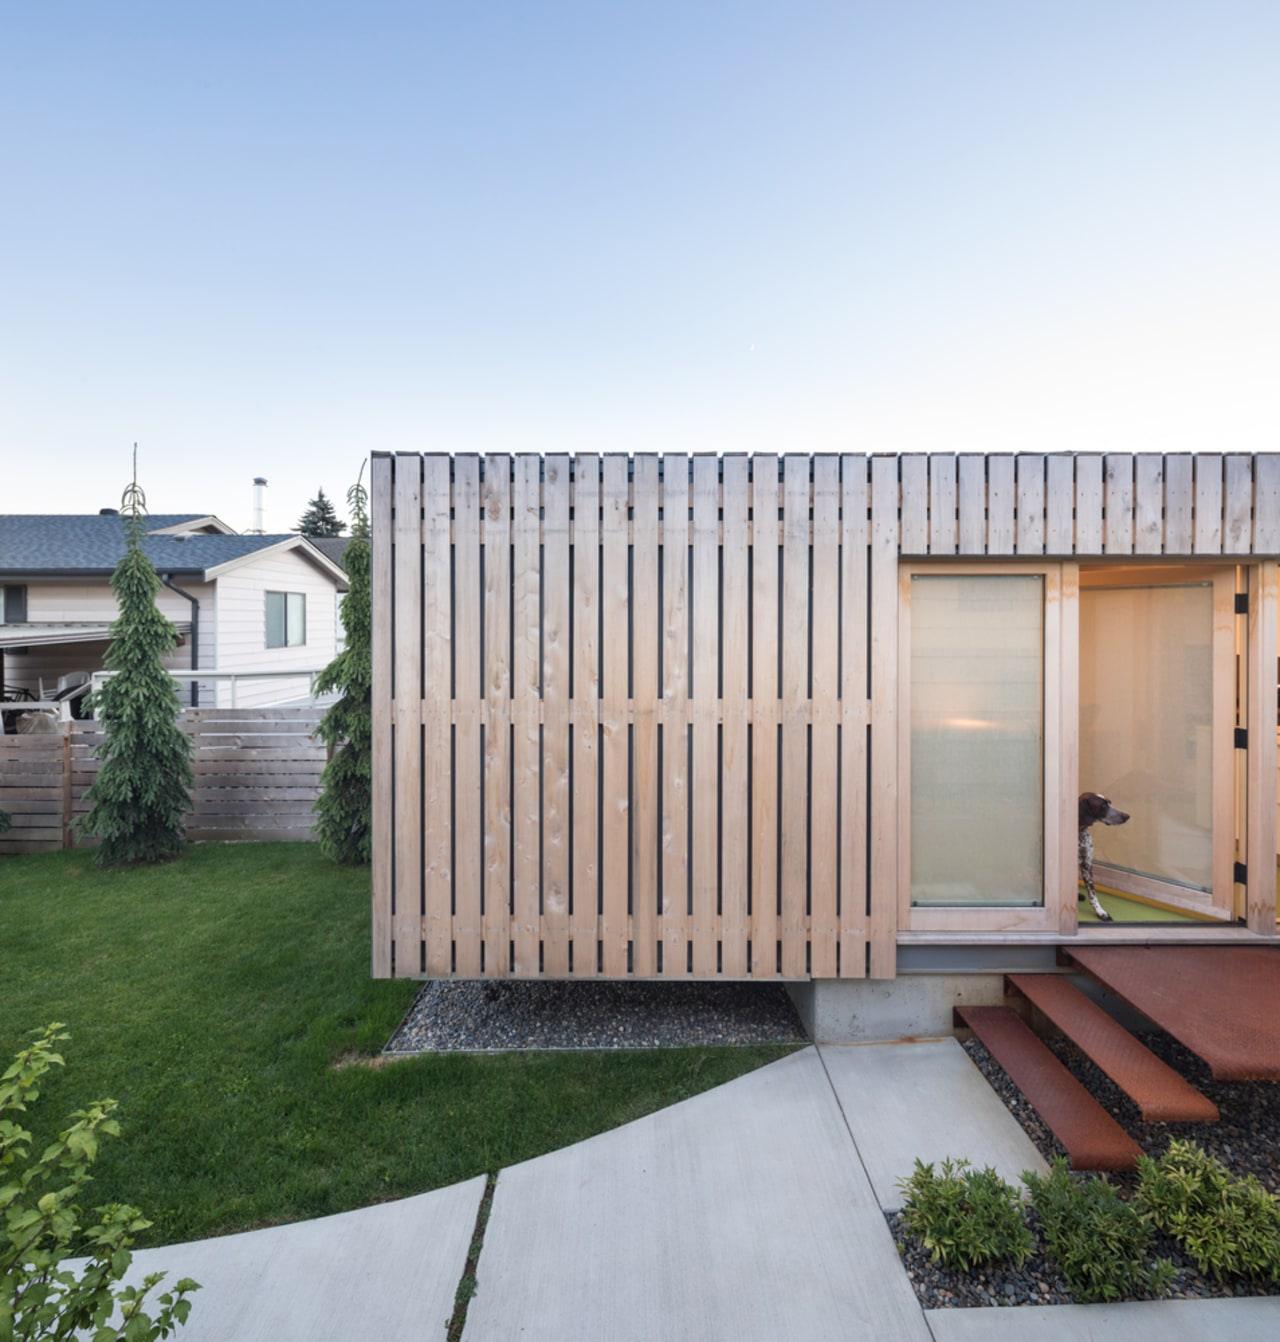 The over-sized corten steel shipping container has a architecture, backyard, daylighting, facade, home, house, property, real estate, residential area, shed, siding, white